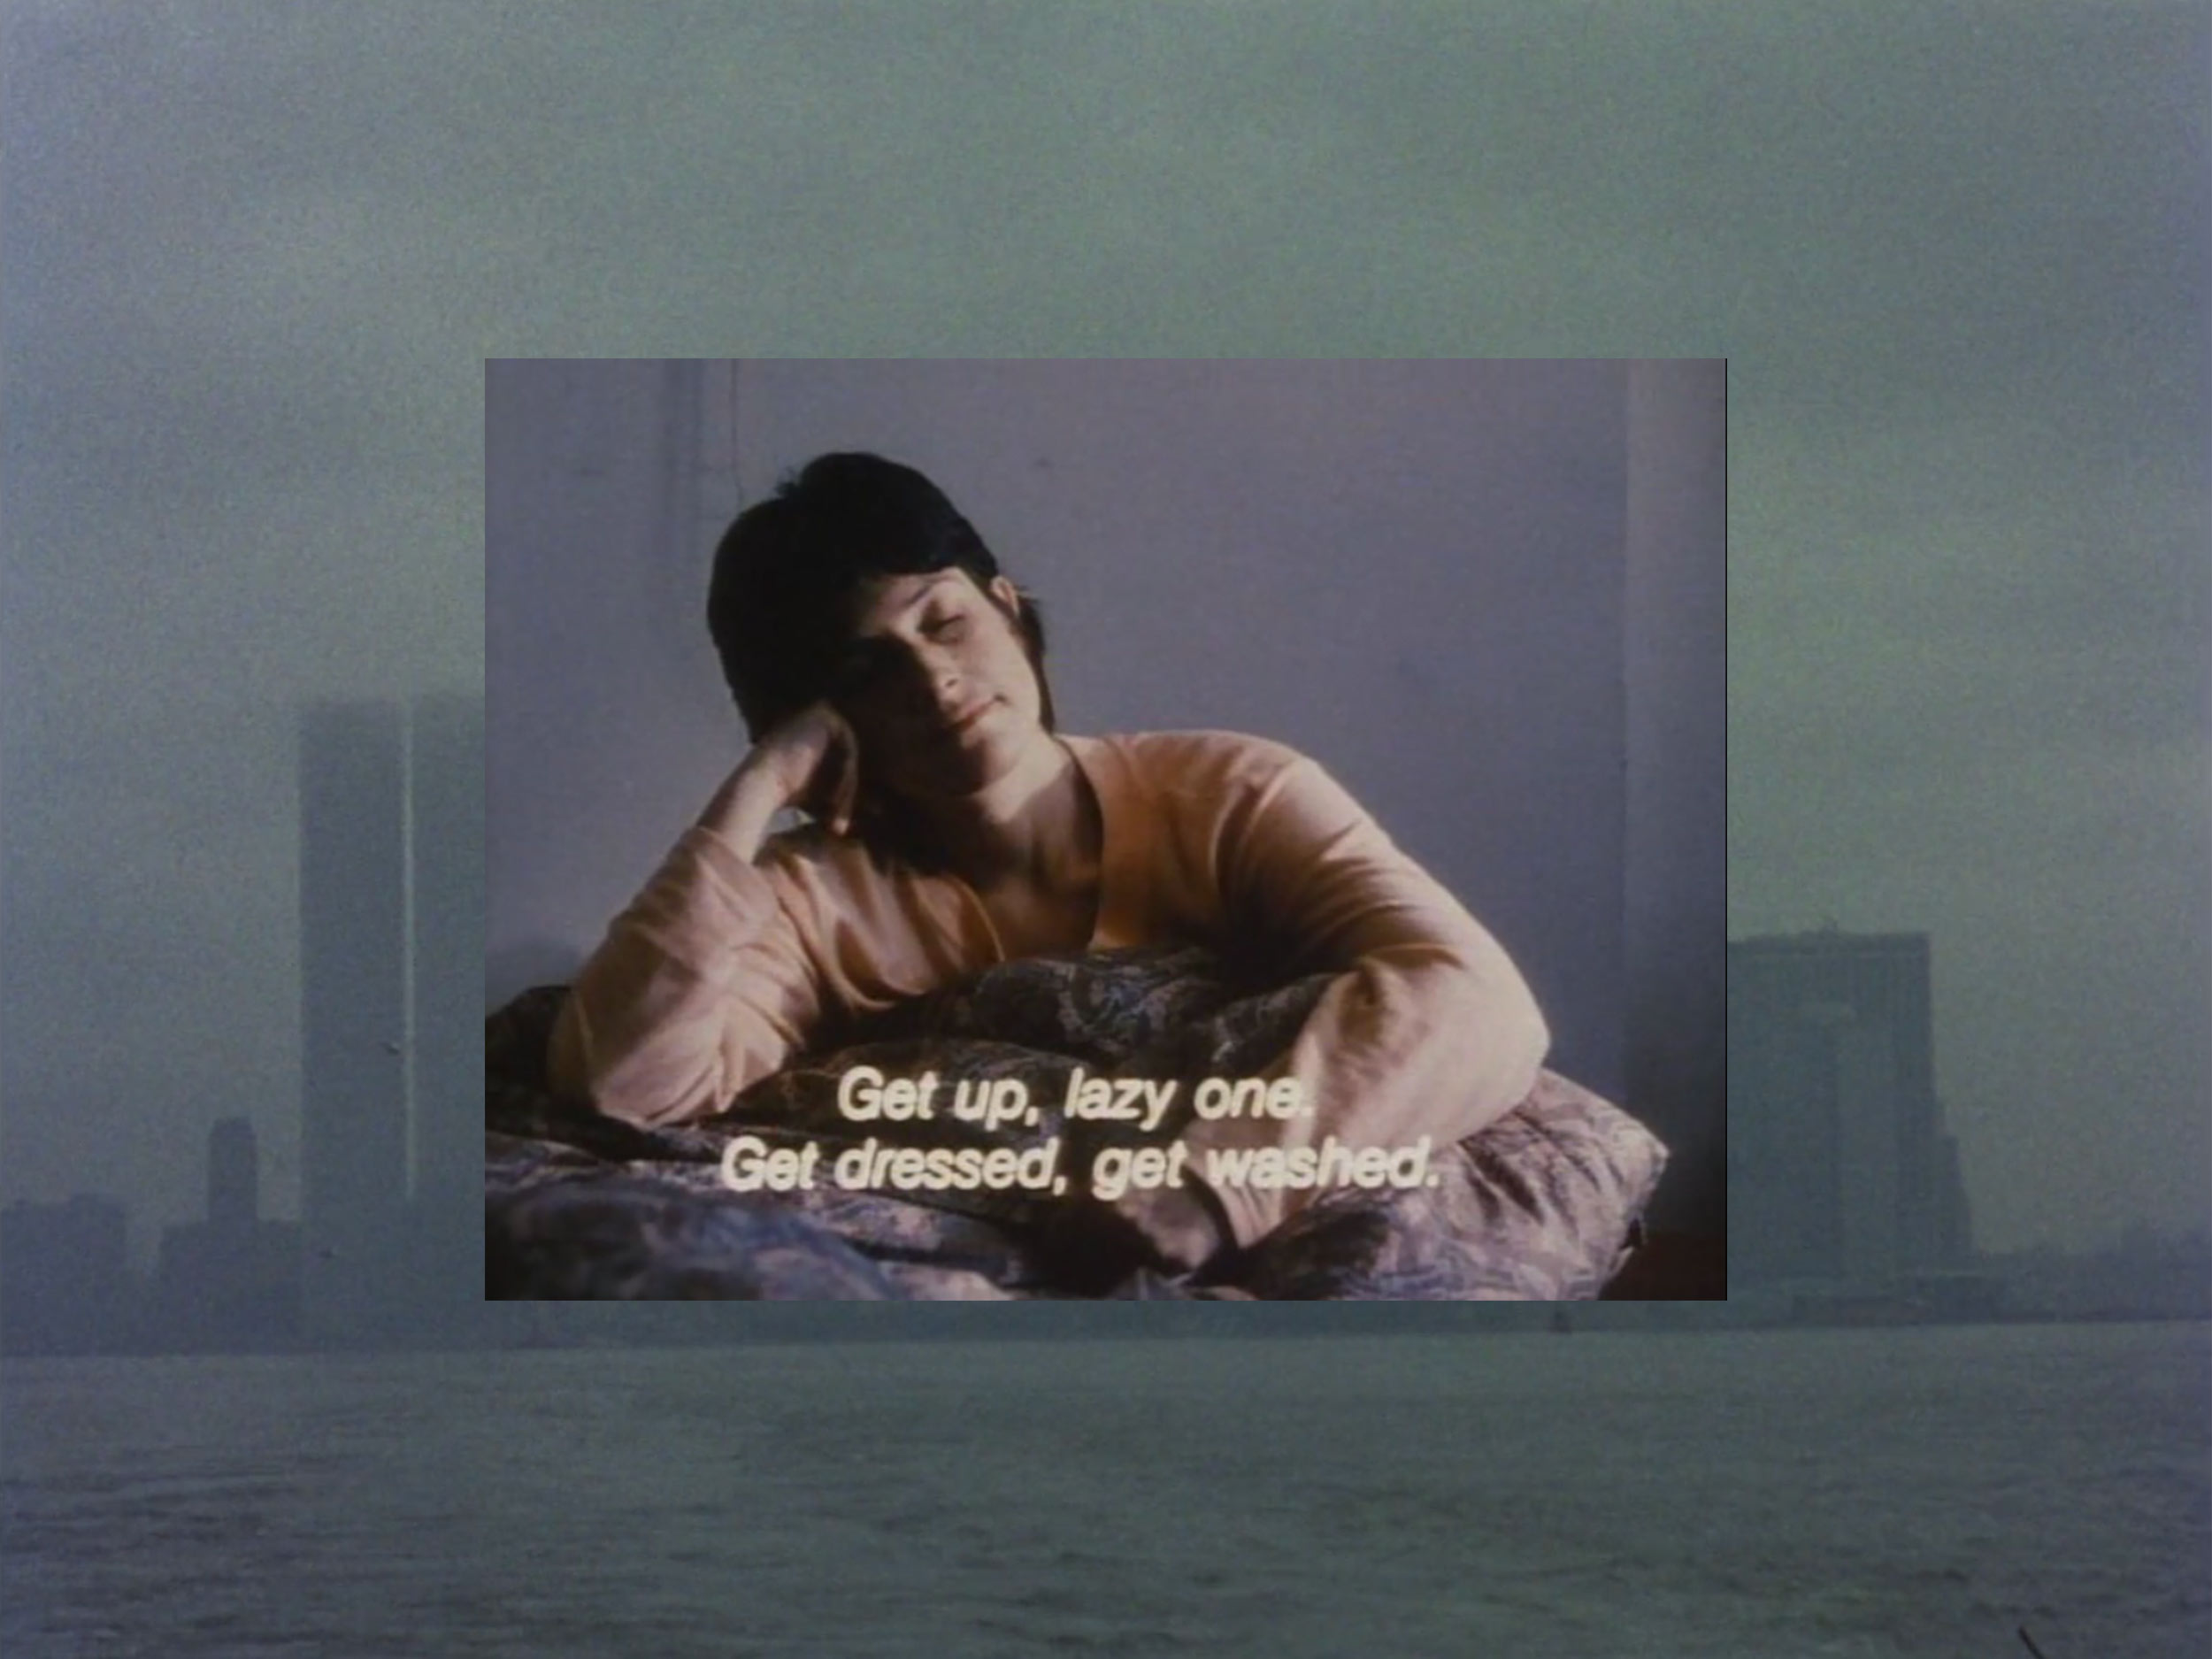 Radical domesticity: The beginner's guide to art-house legend Chantal Akerman